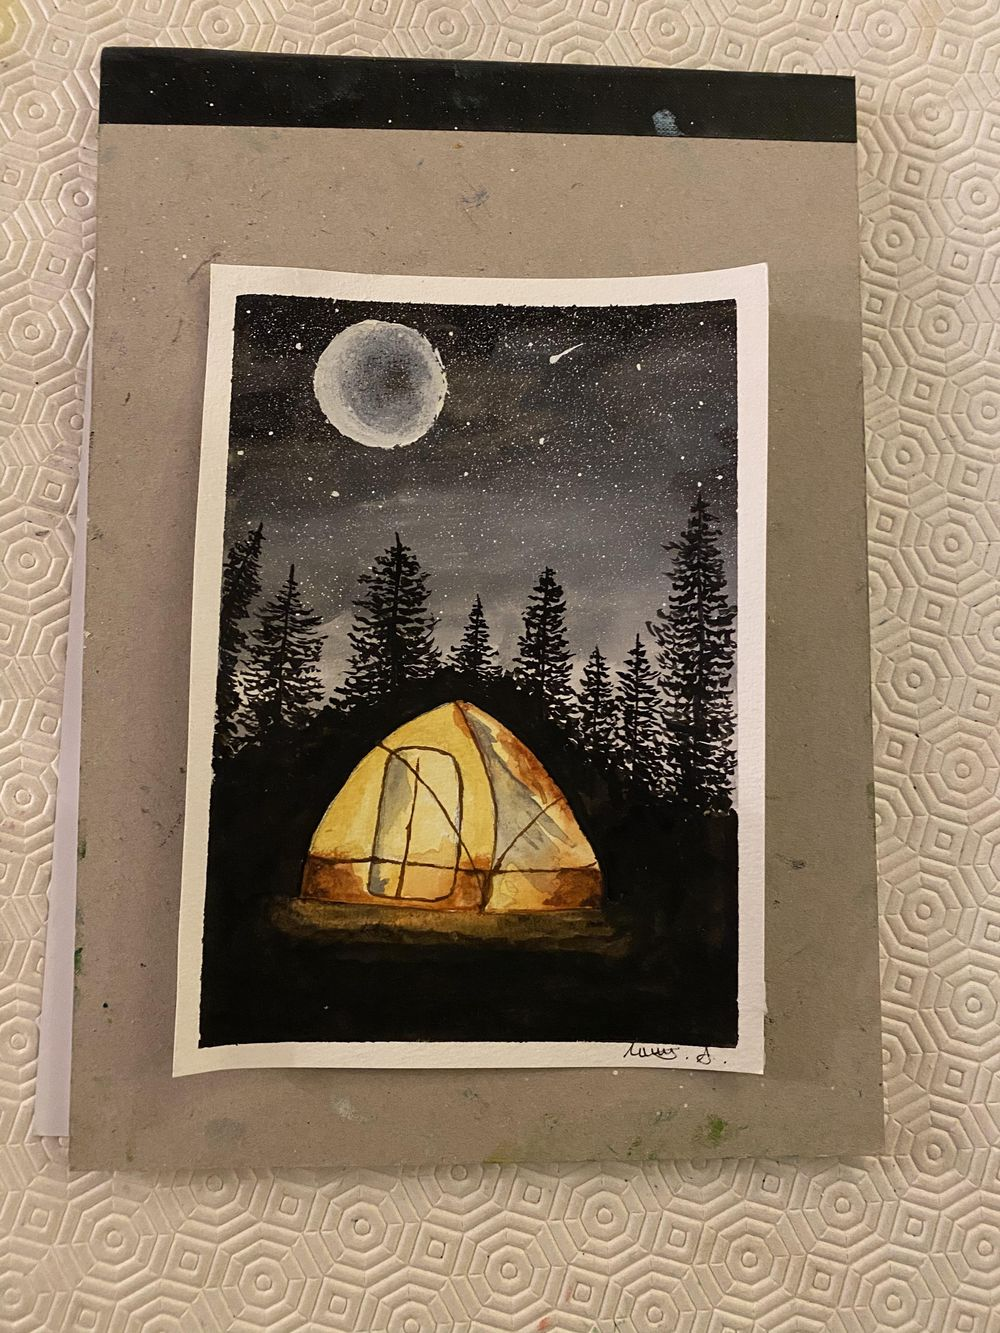 Tent and pine trees in the moonlight - image 1 - student project